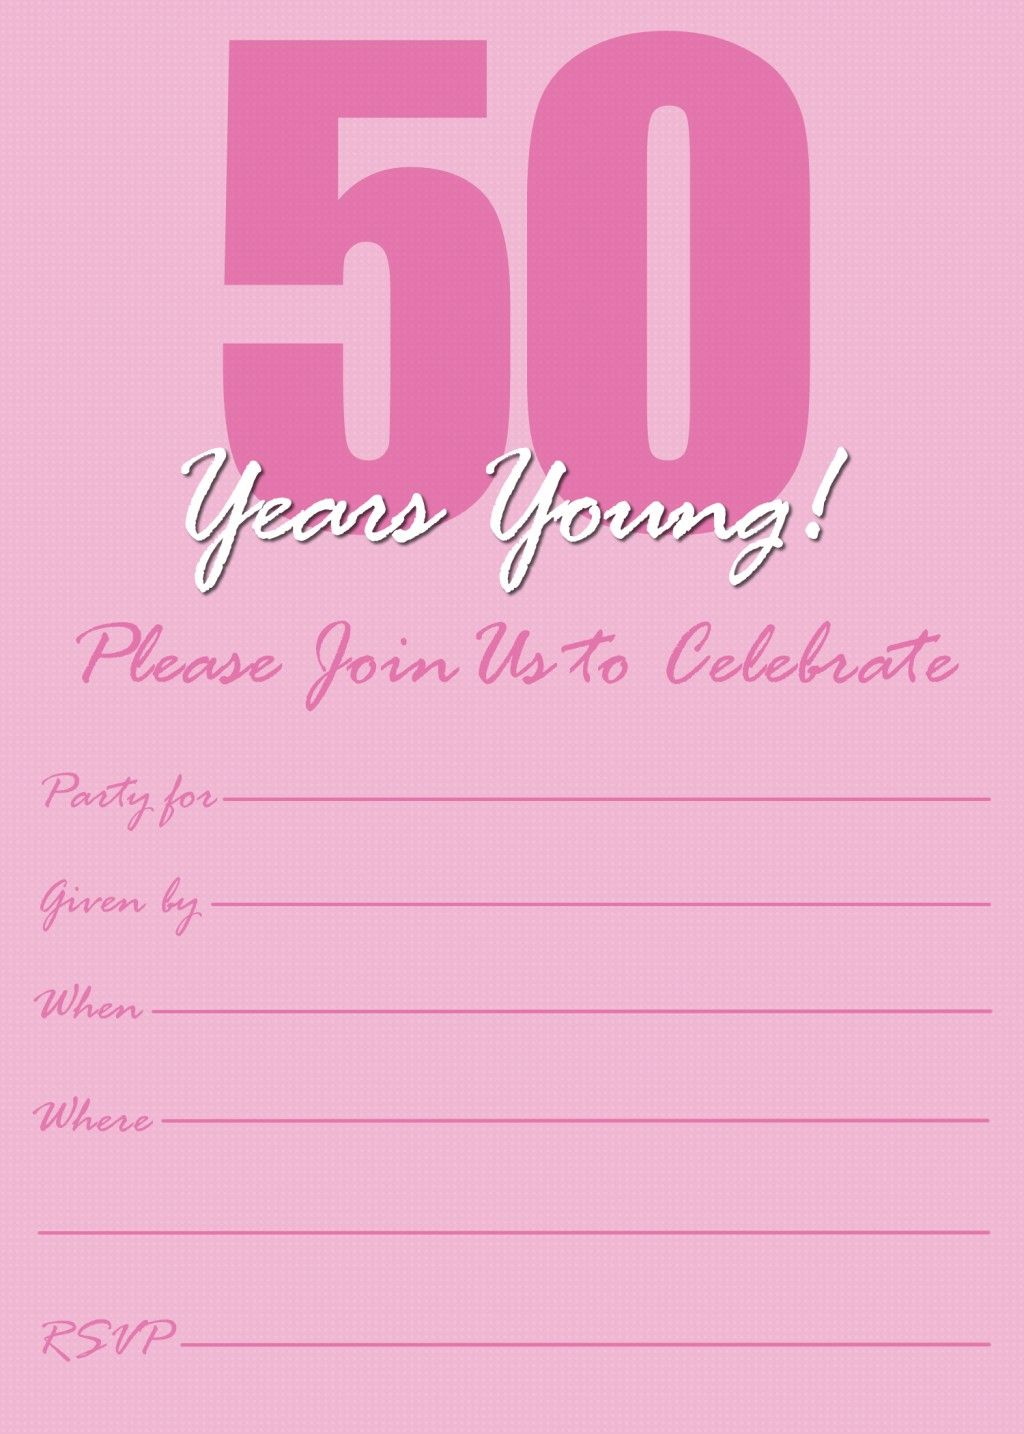 Free Printable 50th Birthday Party Invitation Templates – 50th Birthday Invitation Template Free